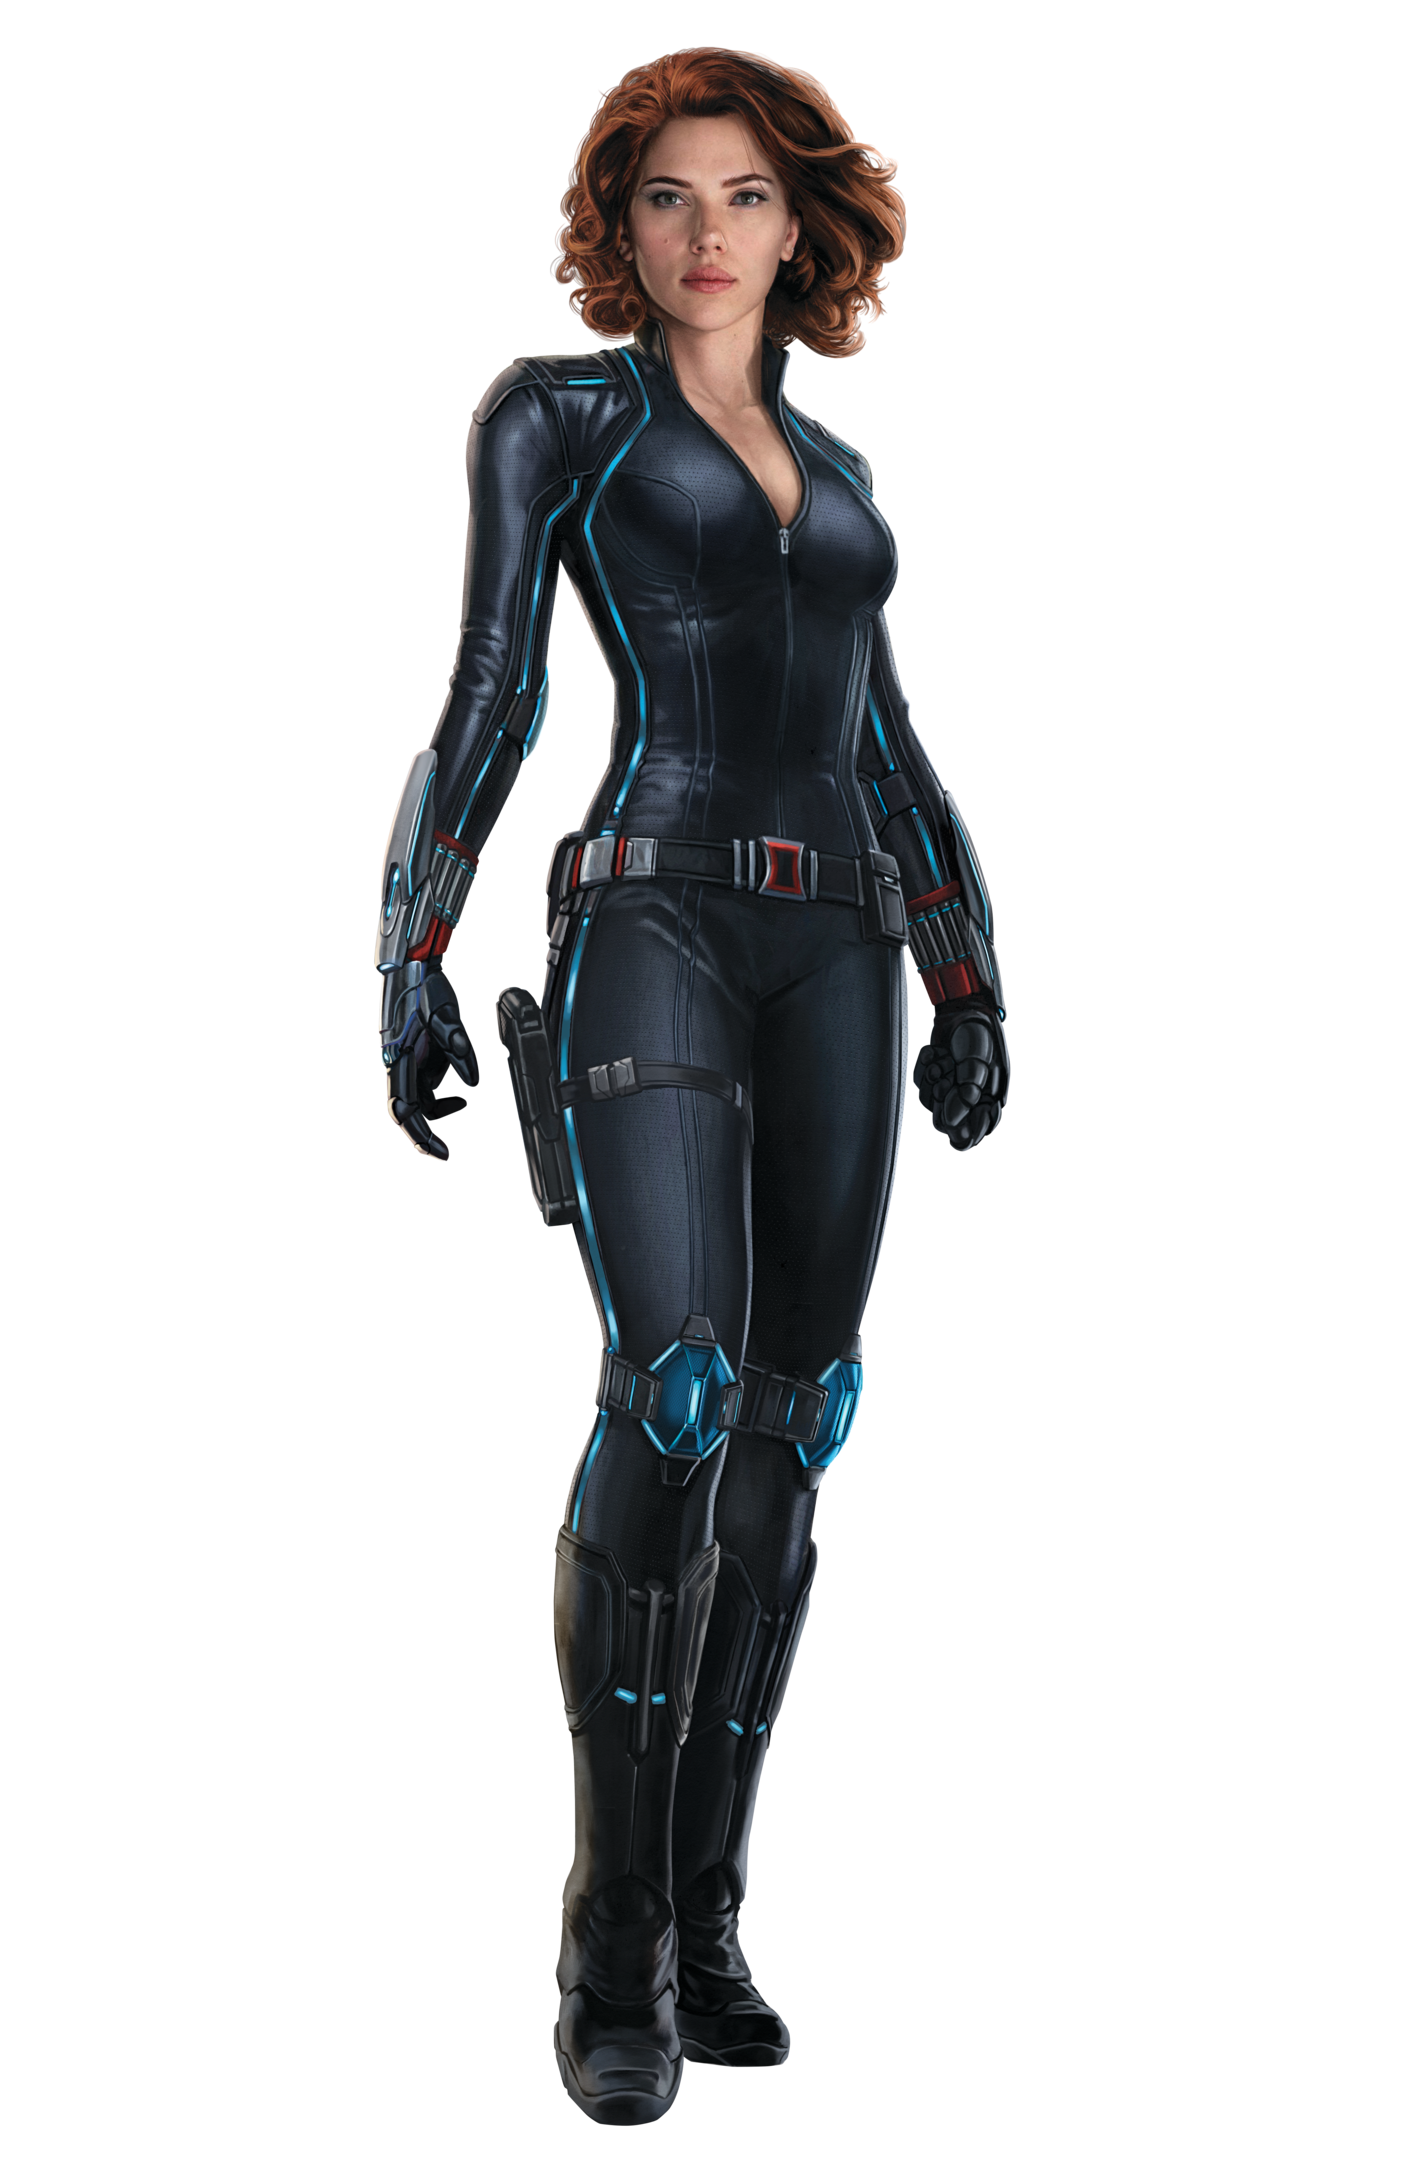 Black Widow PNG Photos - Black Widow PNG